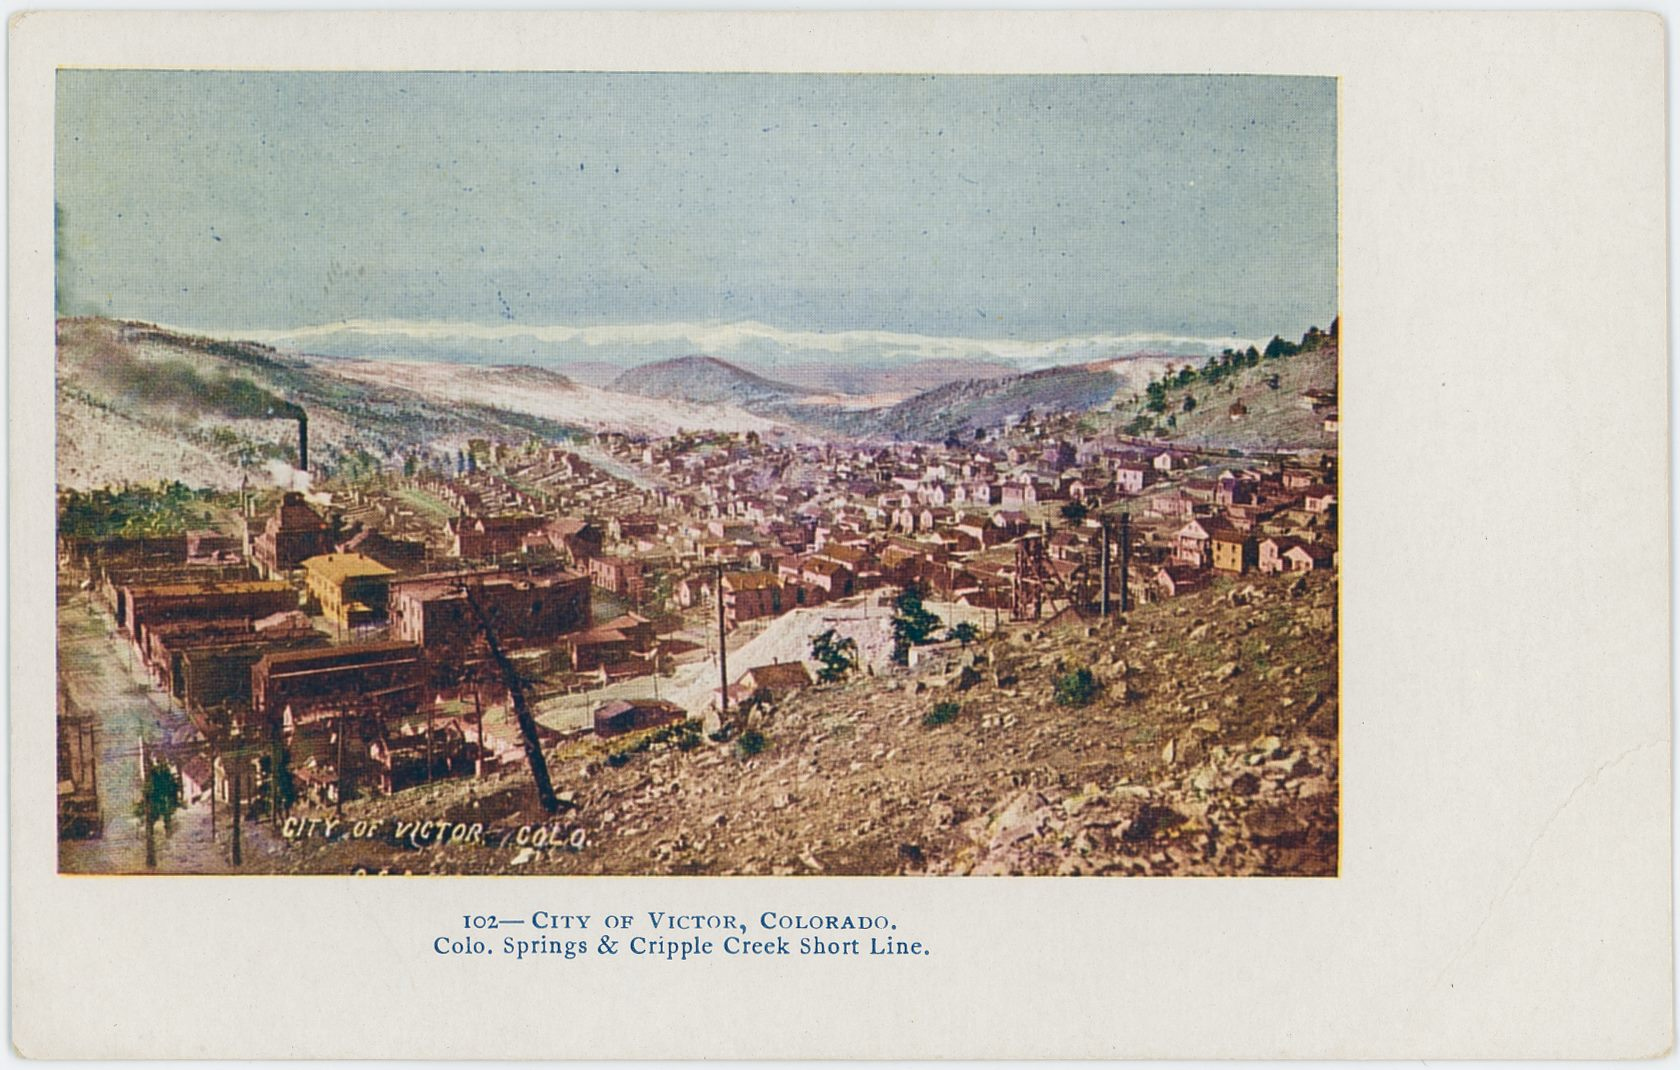 This photo is possible from 1904 as it appears in a book from that timeframe with a Copyright note of 1904 by Hook, the photographer. The town of Victor is seen from Battle Mountain, not exactly sure where, but at left-hand side is the Fourth Street seen. The Gold Coin Mine and Gold Coin Club is seen about 1/5 in from the left, and the mine structure partly hidden by the hill, with its double smokestack and head frame about 1/5 in from the right and 1/3 up from bottom is the north-east side of the Oliver shaft, or the main Dead Pine shaft, as confirmed by looking at the 1908 Sanborn Fire Insurance Map.